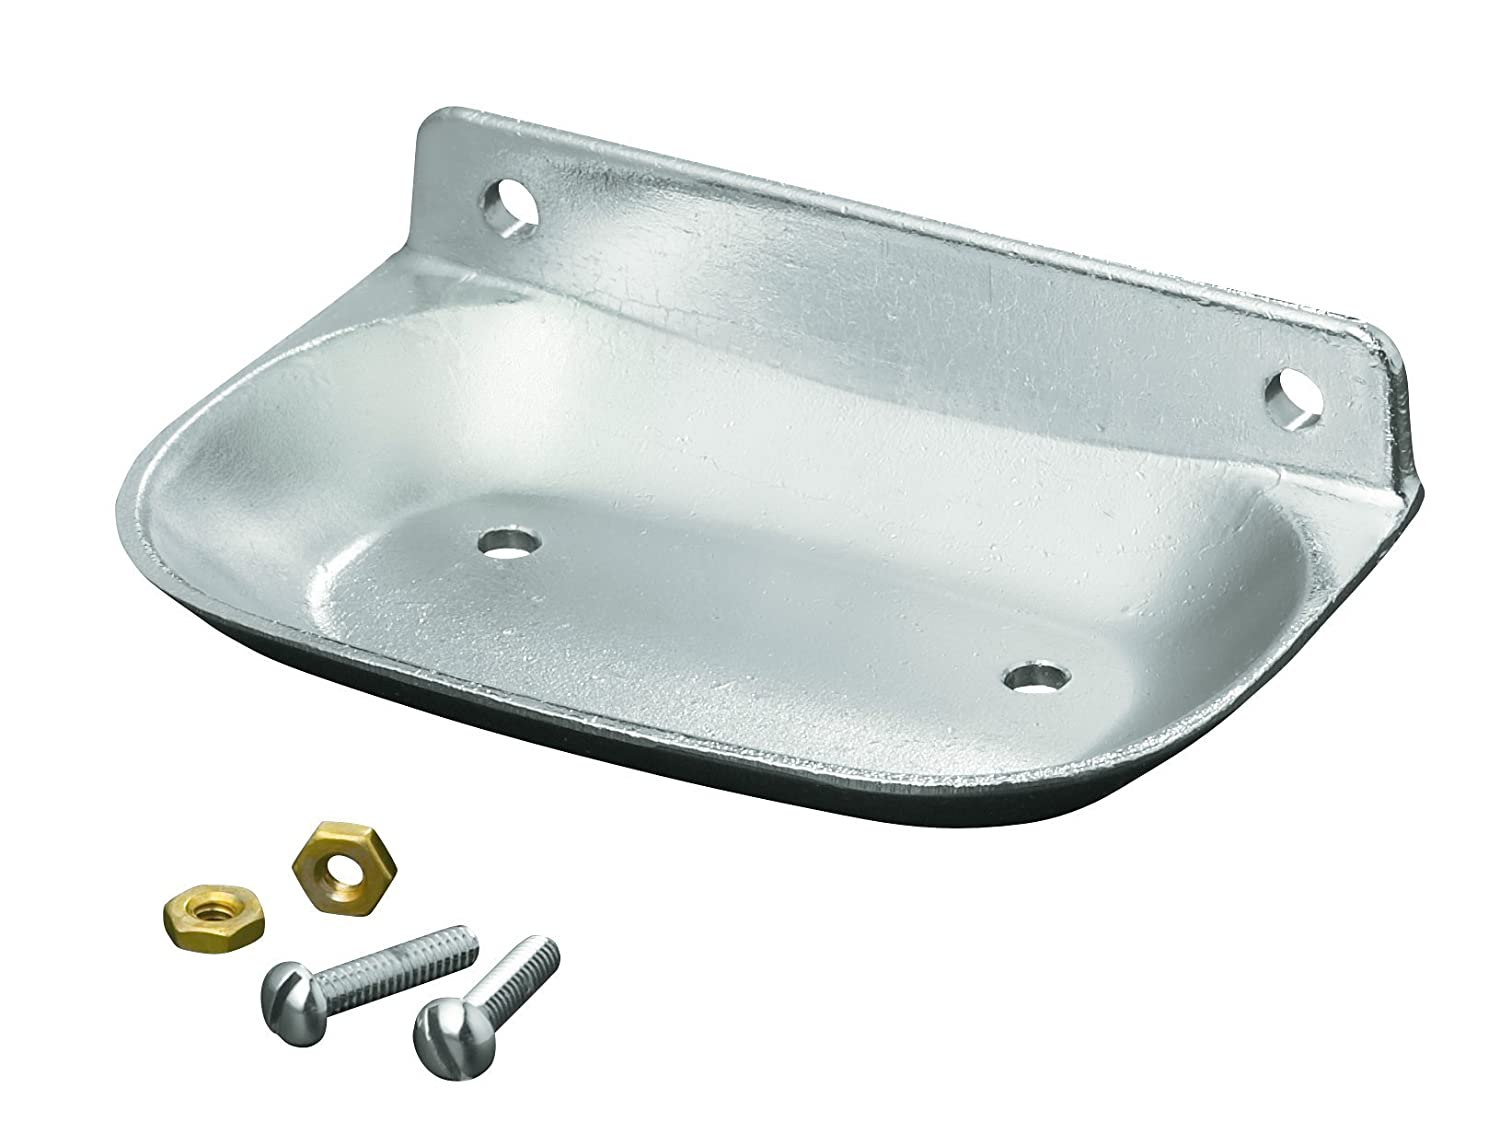 amazoncom kohler k8880bc brockway soap dish bright chrome home improvement